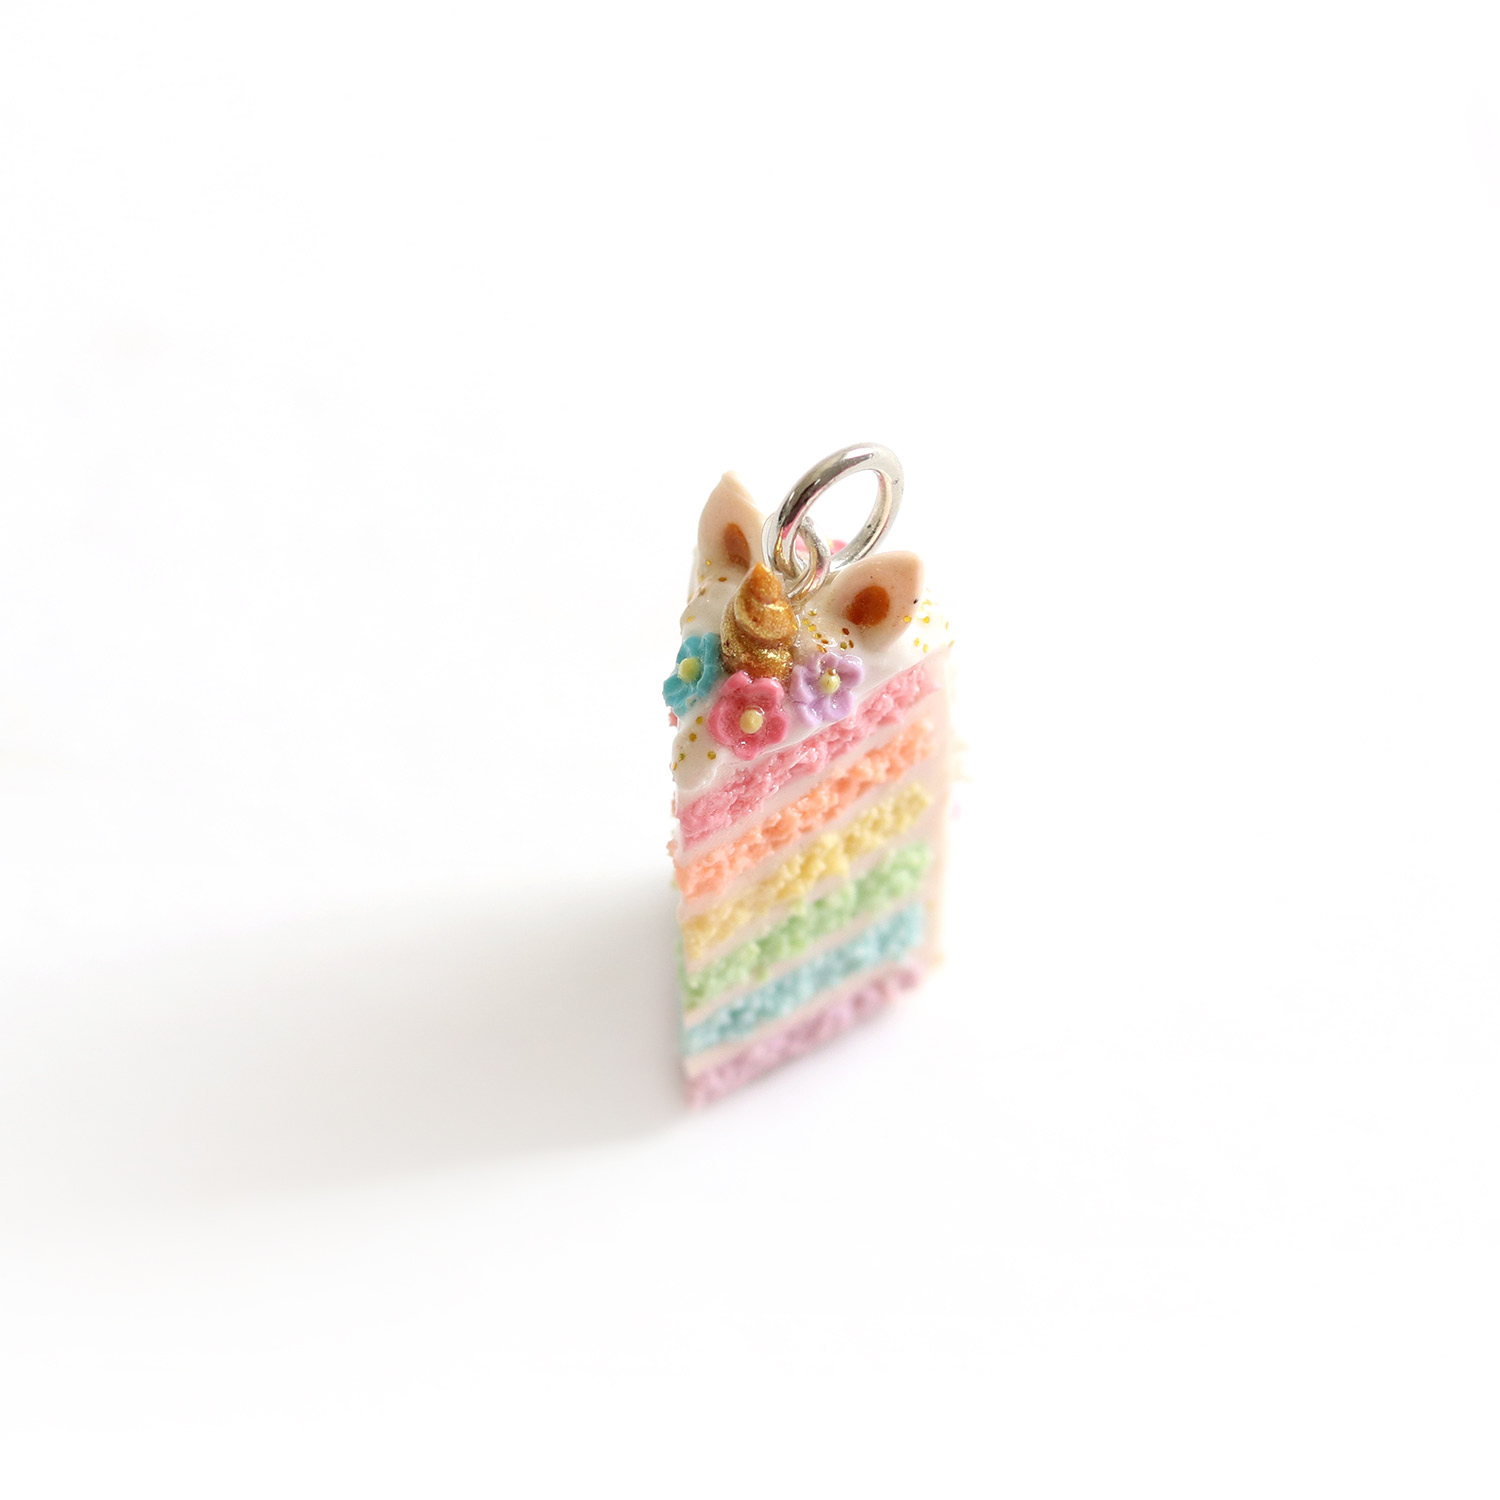 Unicorn Rainbow Cake Charm/ Necklace